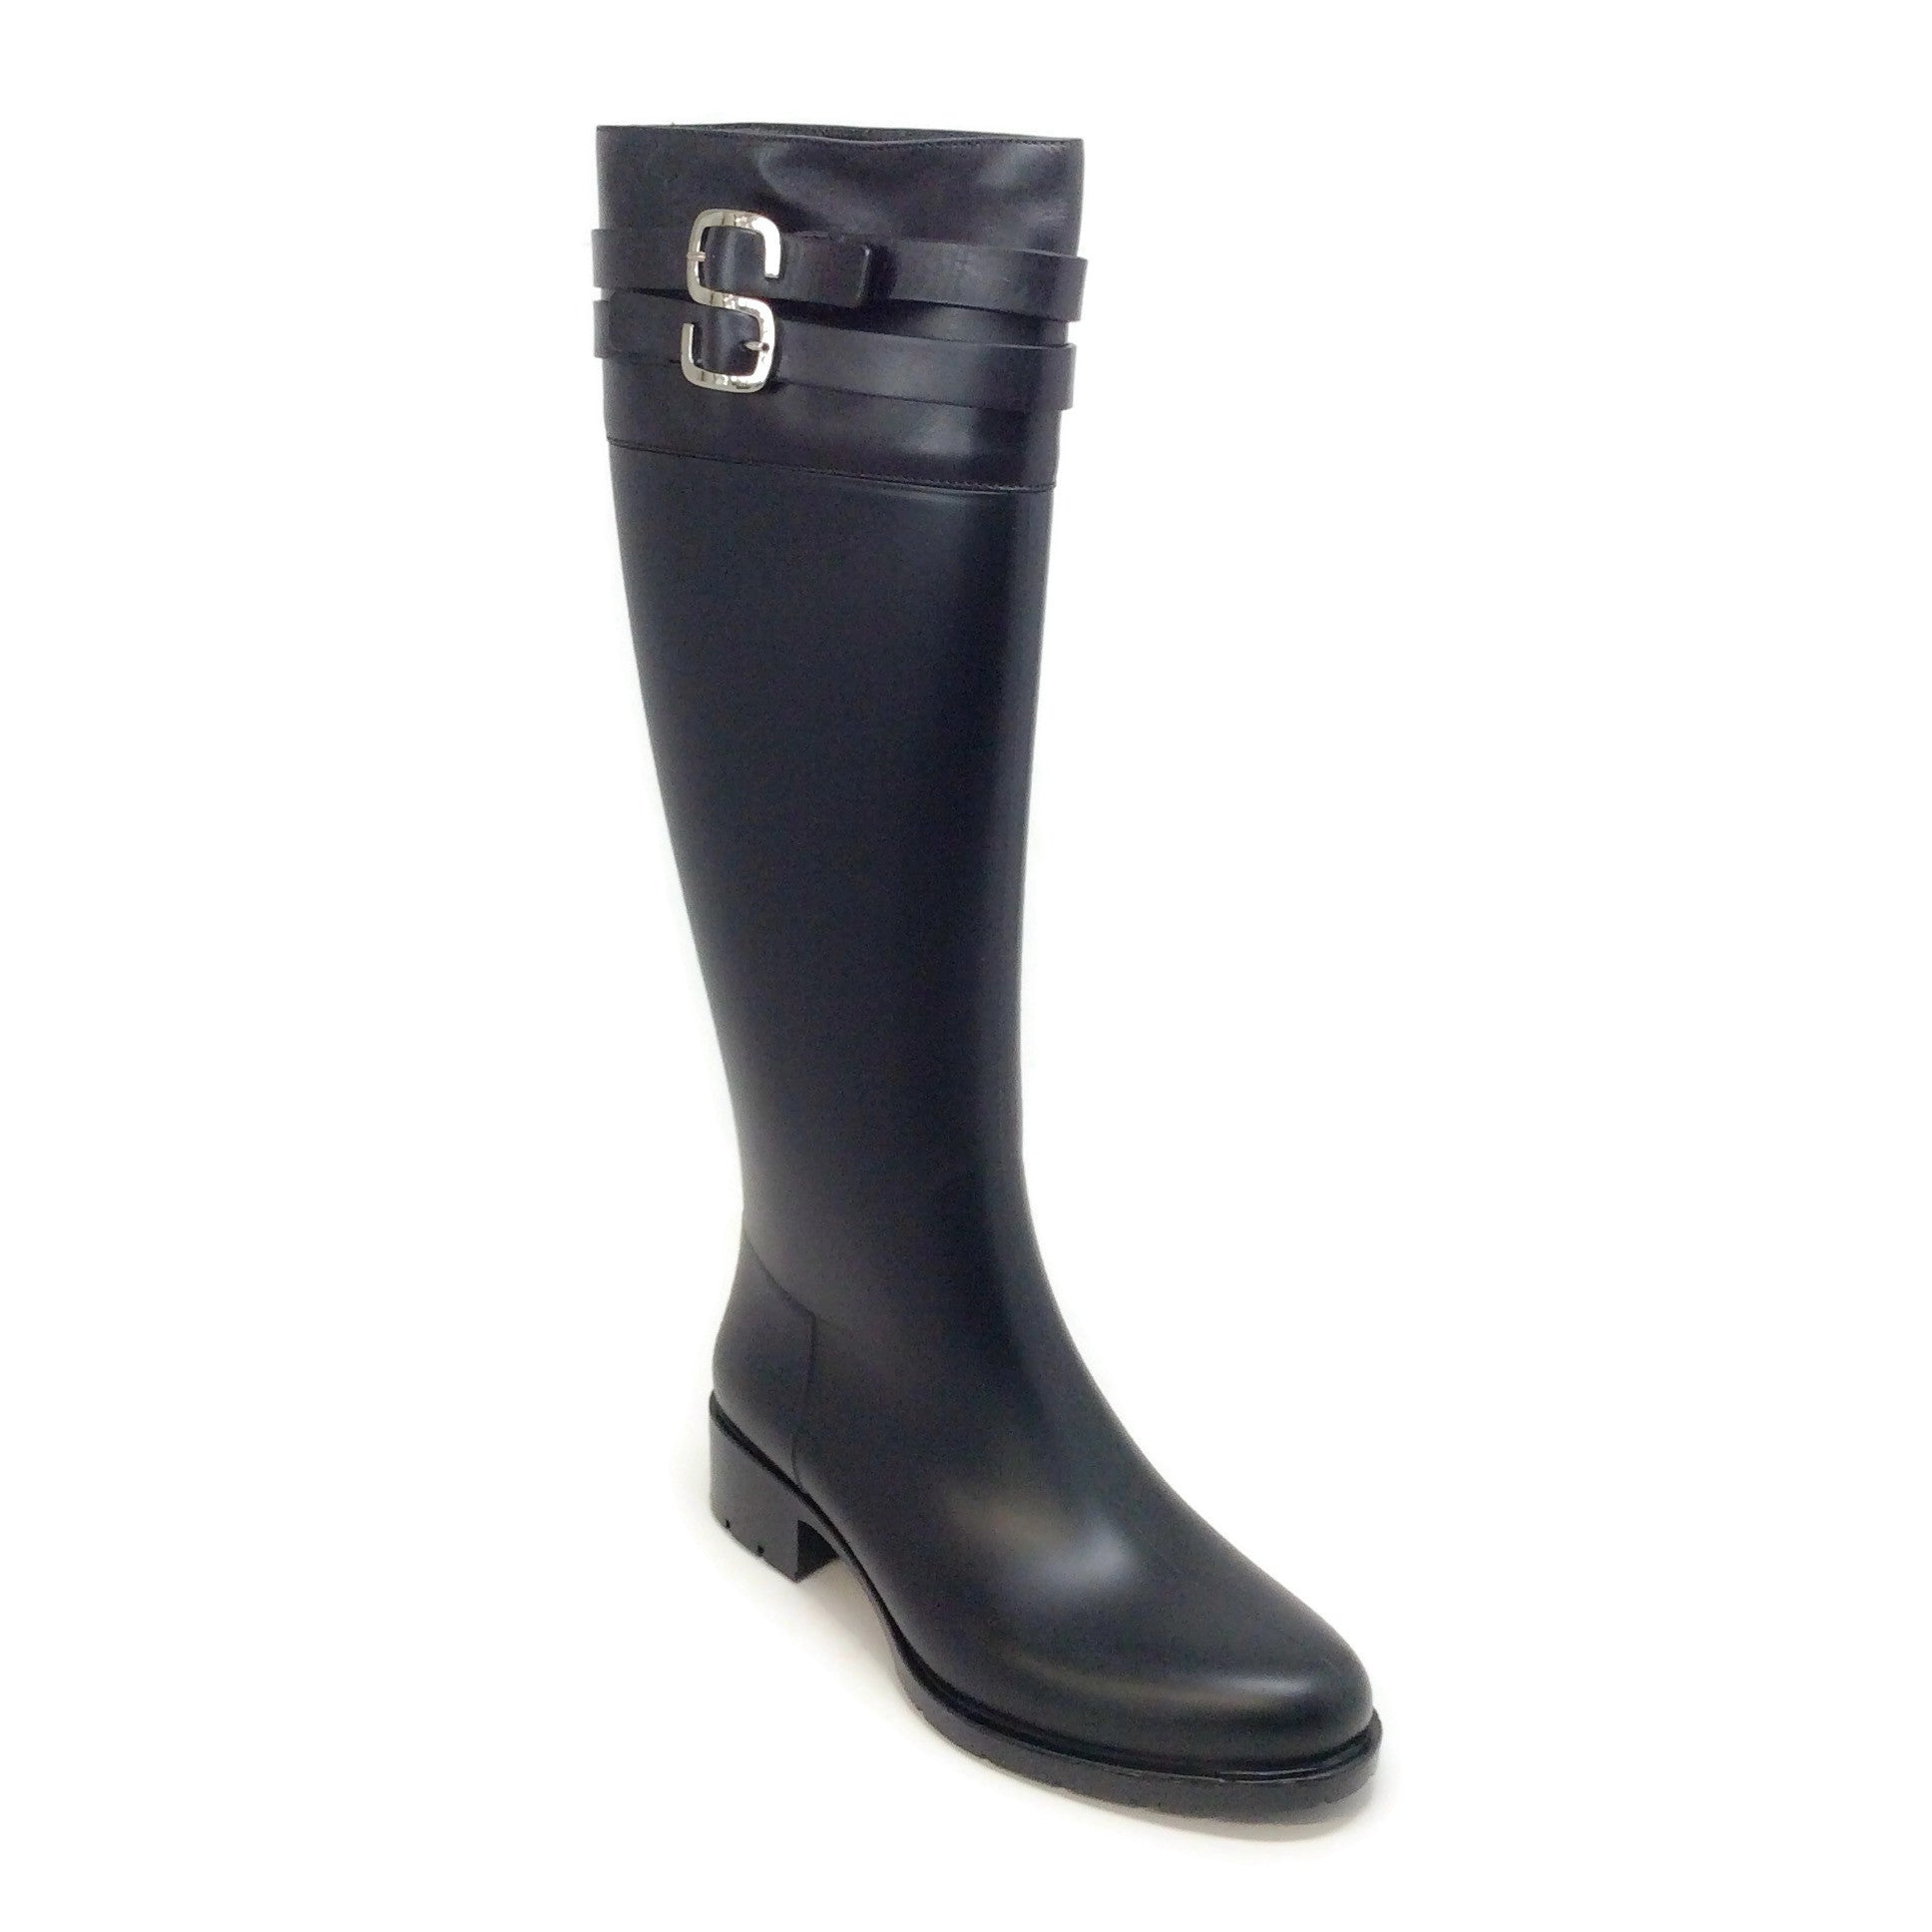 Sonia Rykiel Black Rubber with Logo Boots